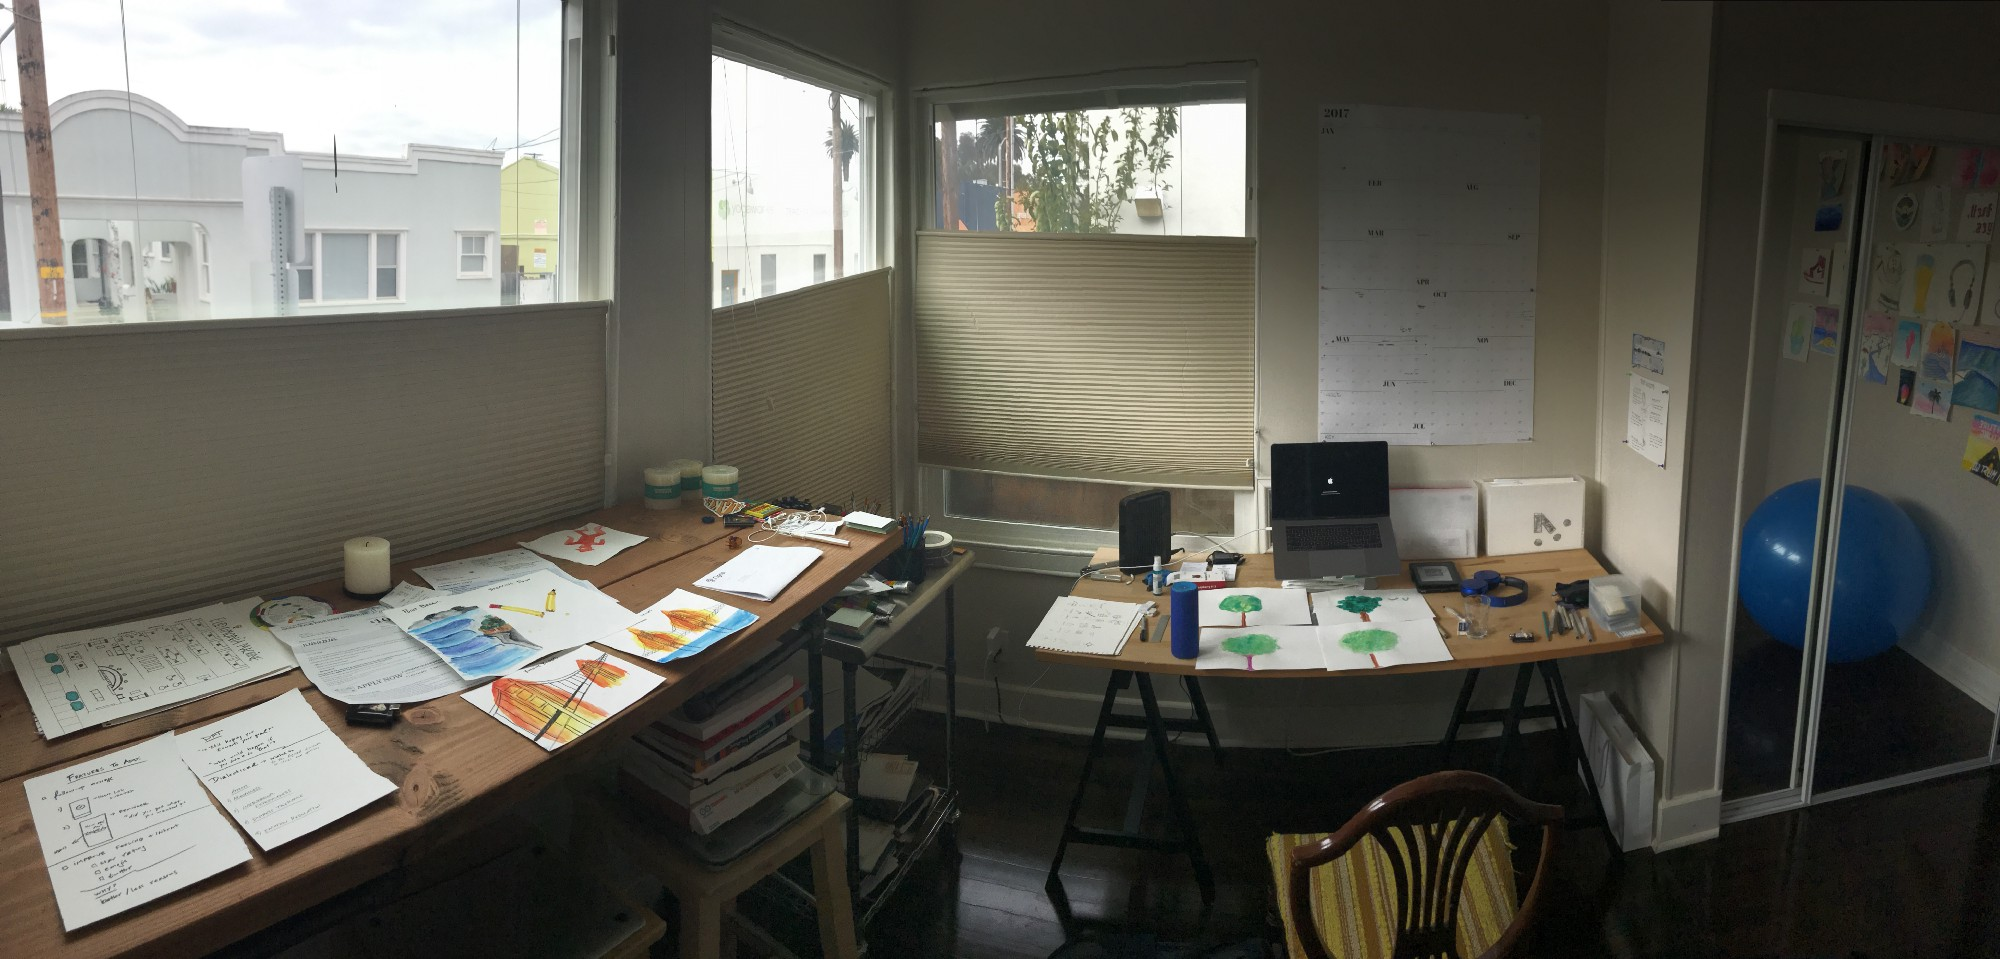 My Home Office Is A Fortress Of Productivity. Photo Courtesy Of Author.